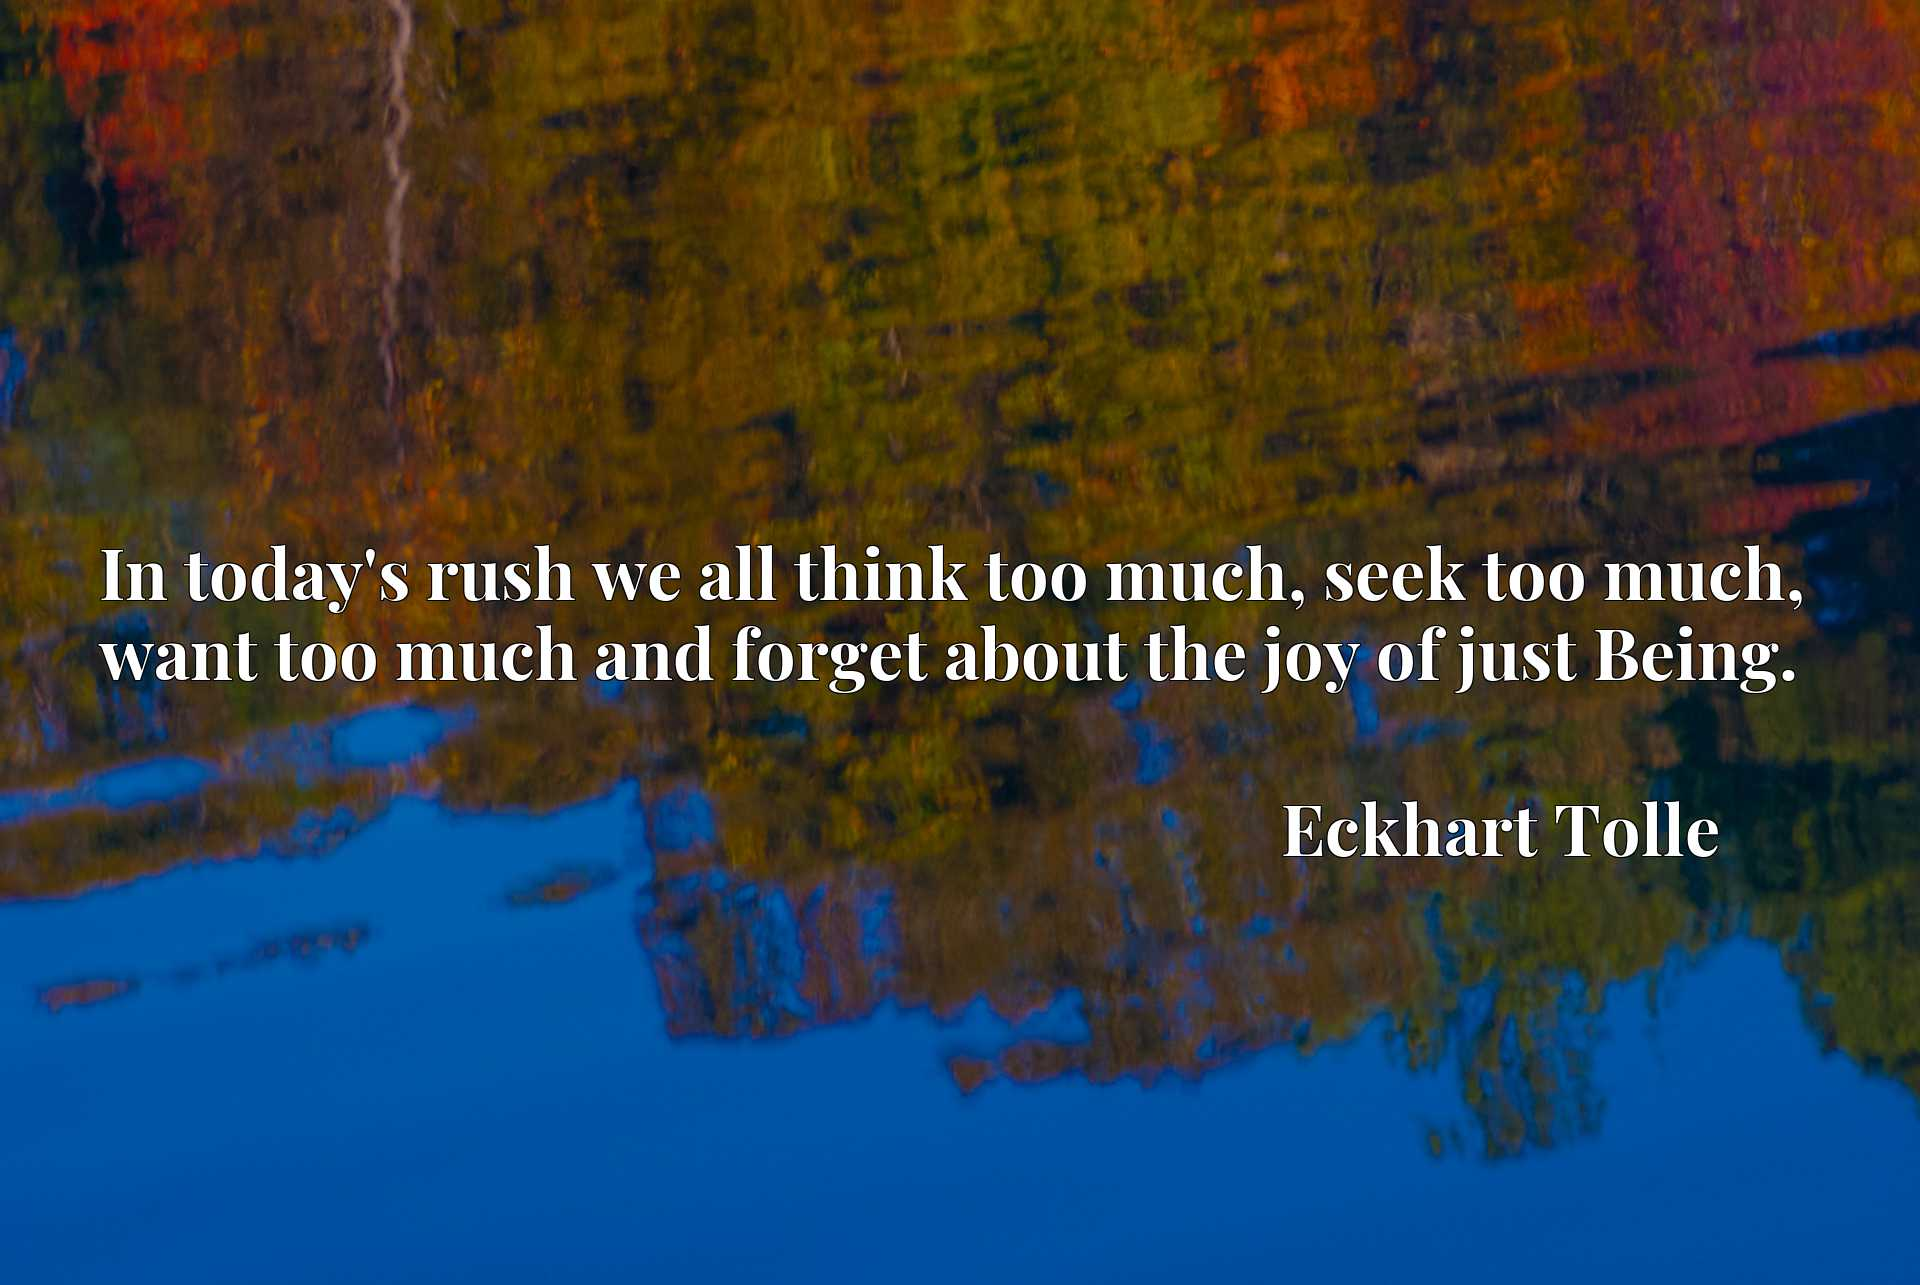 In today's rush we all think too much, seek too much, want too much and forget about the joy of just Being.